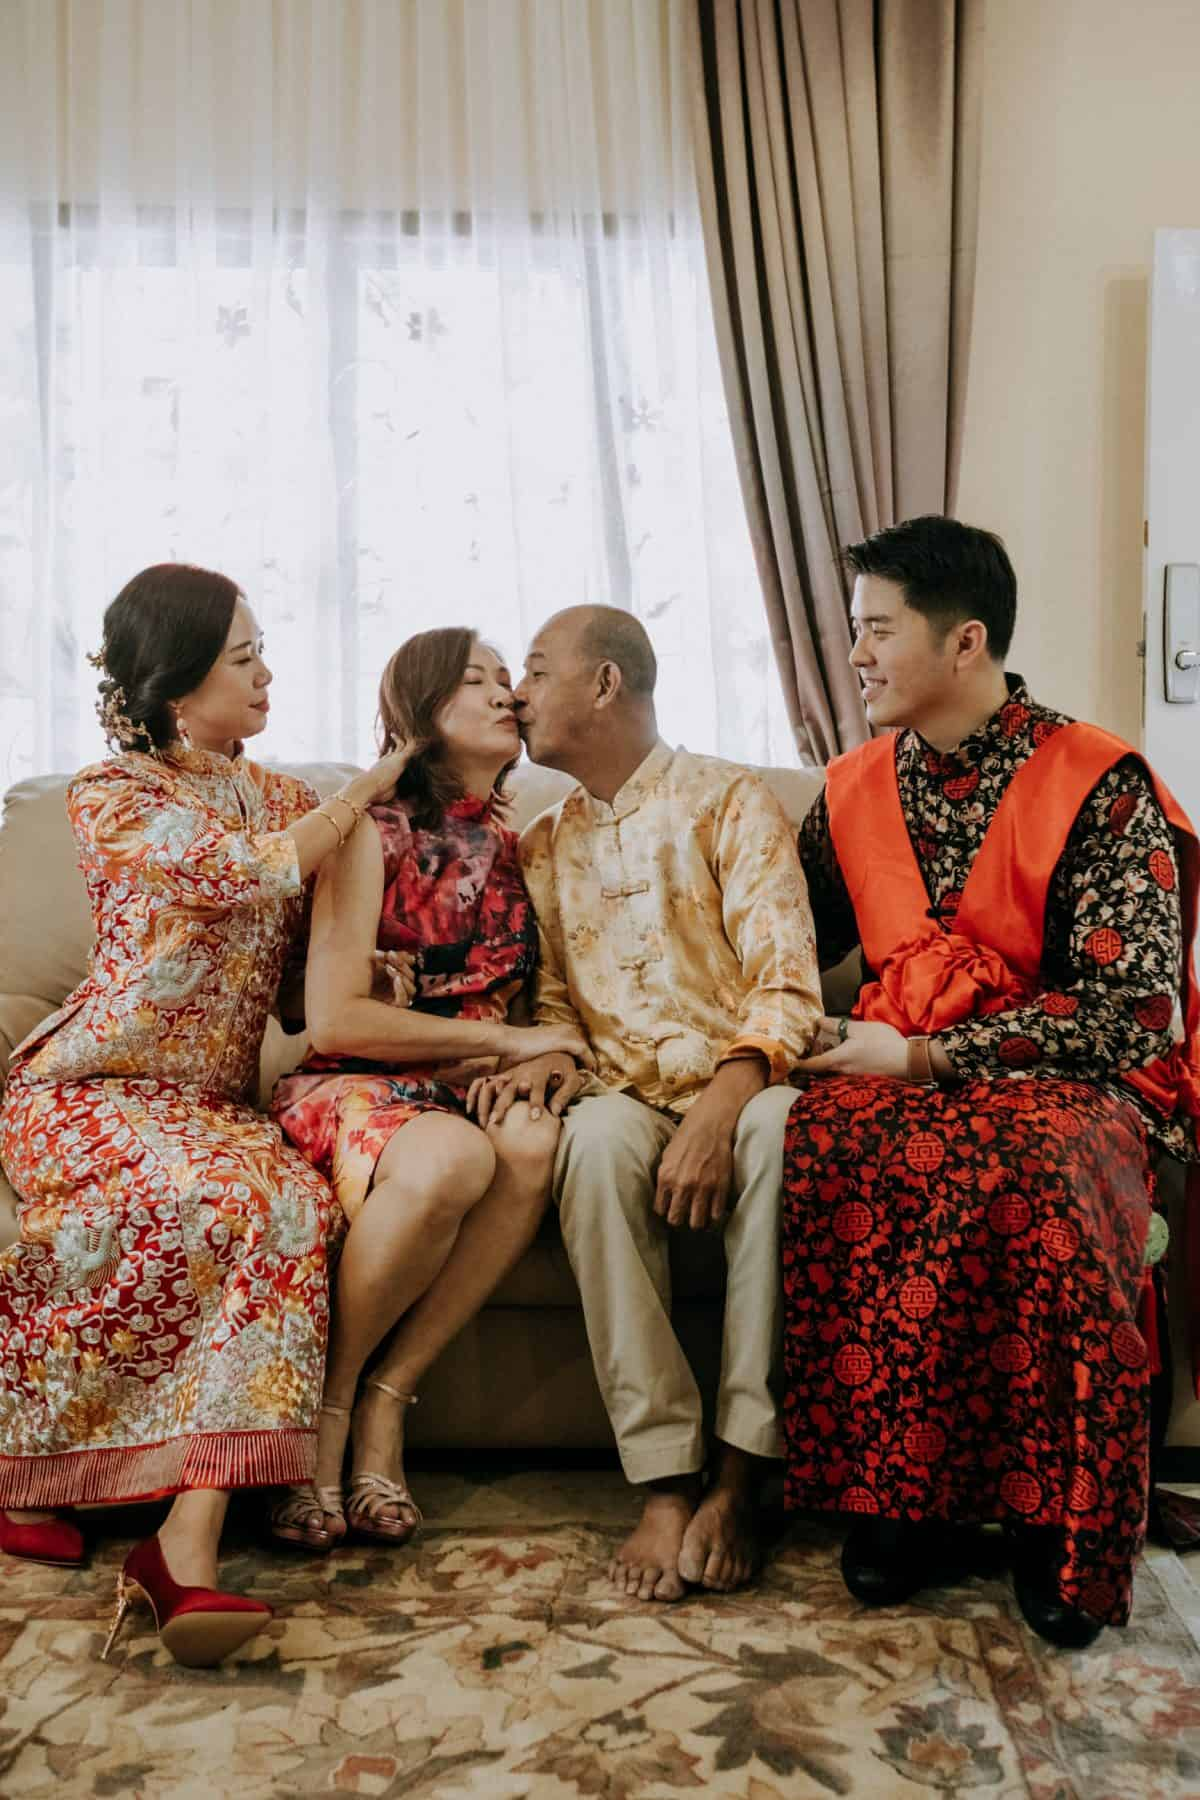 cliff choong destination portrait and wedding photographer malaysia kuala lumpur prewedding sunset golden sunrise shots bride and groom HOLDING HANDS rotterdam netherlands wedding Chinese Traditional Actual Day Kwan Kwa Ma Gua